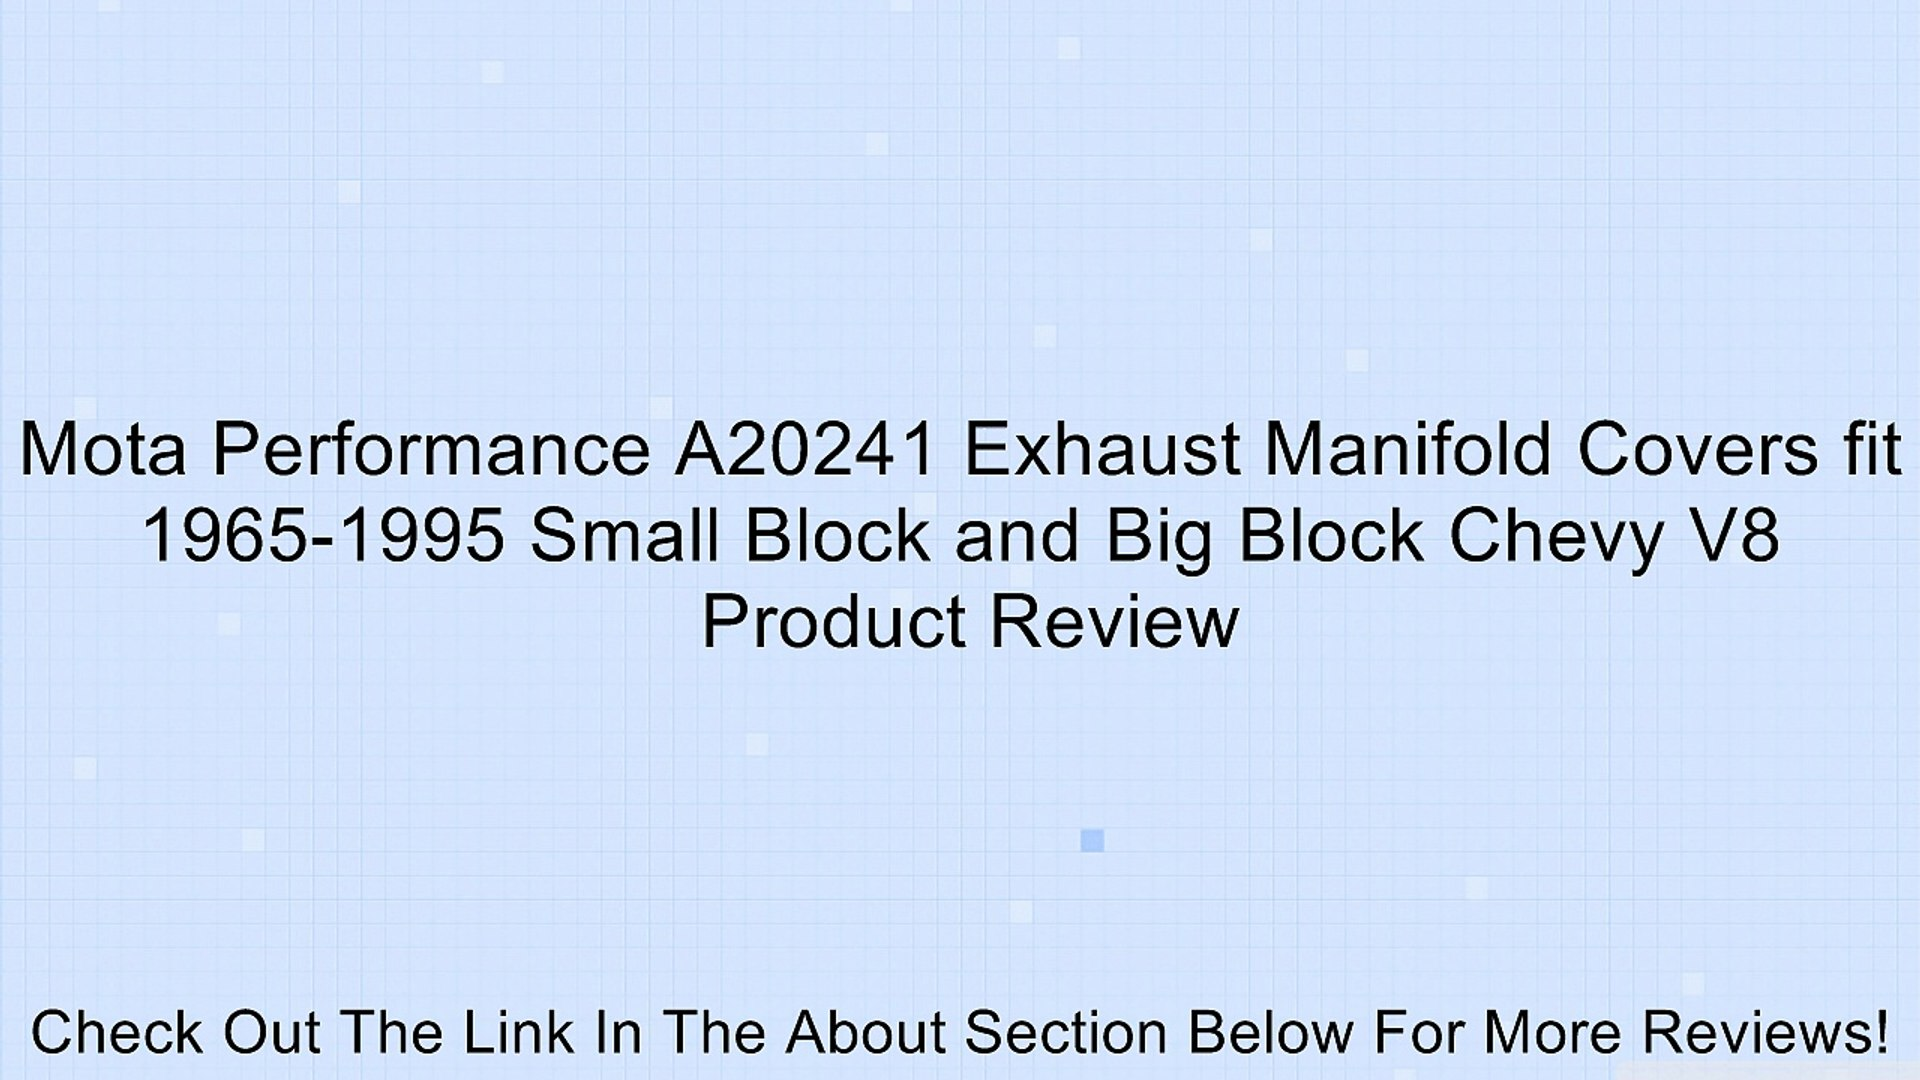 Mota Performance A20241 Exhaust Manifold Covers fit 1965-1995 Small Block and Big Block Chevy V8